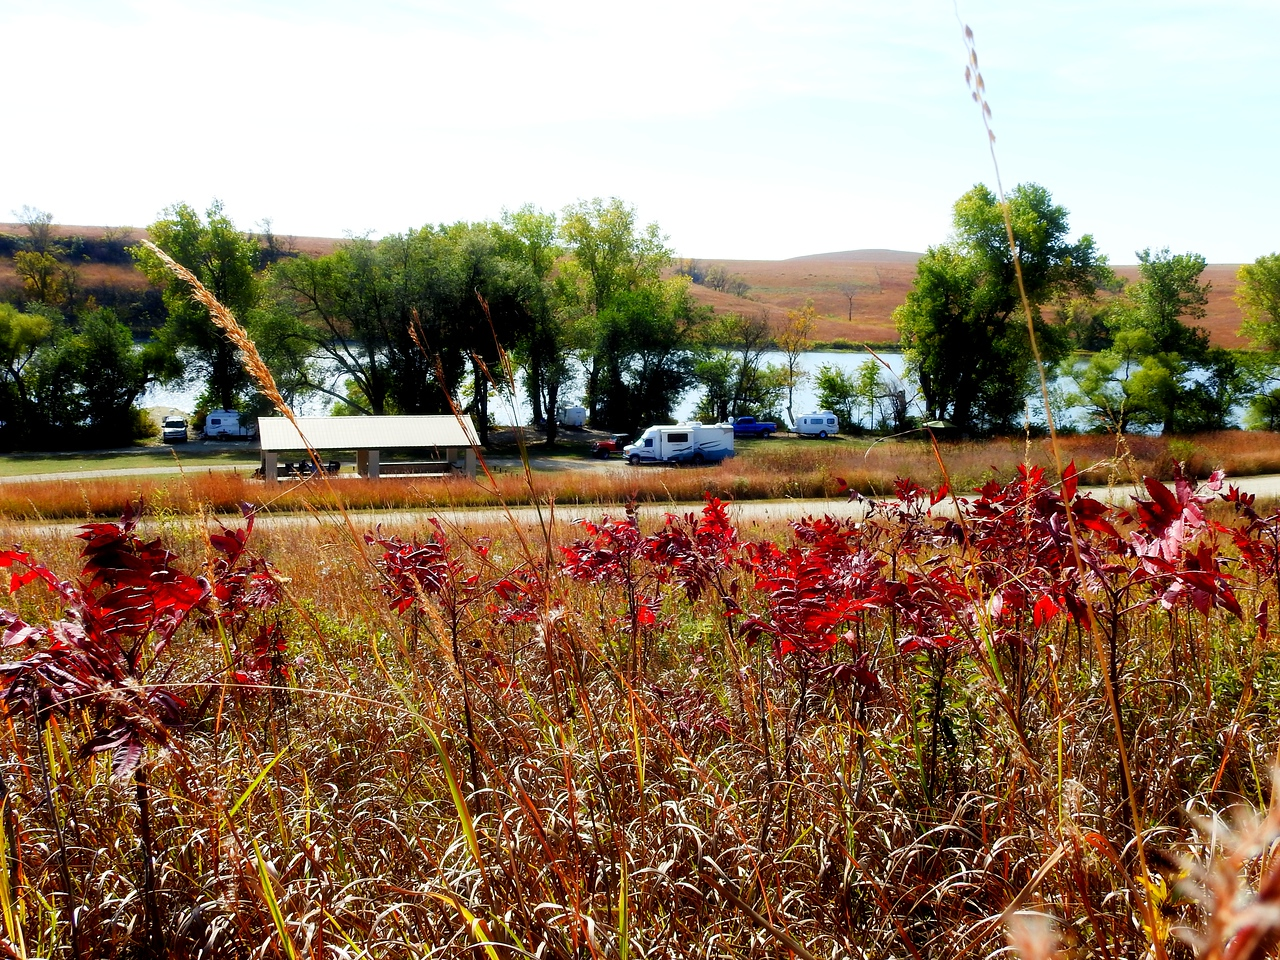 It's fall again in the Kansas Flint Hills and I always looks forward to camping at this time with a small group of friends that appreciate the beauty of this area as much as I do.